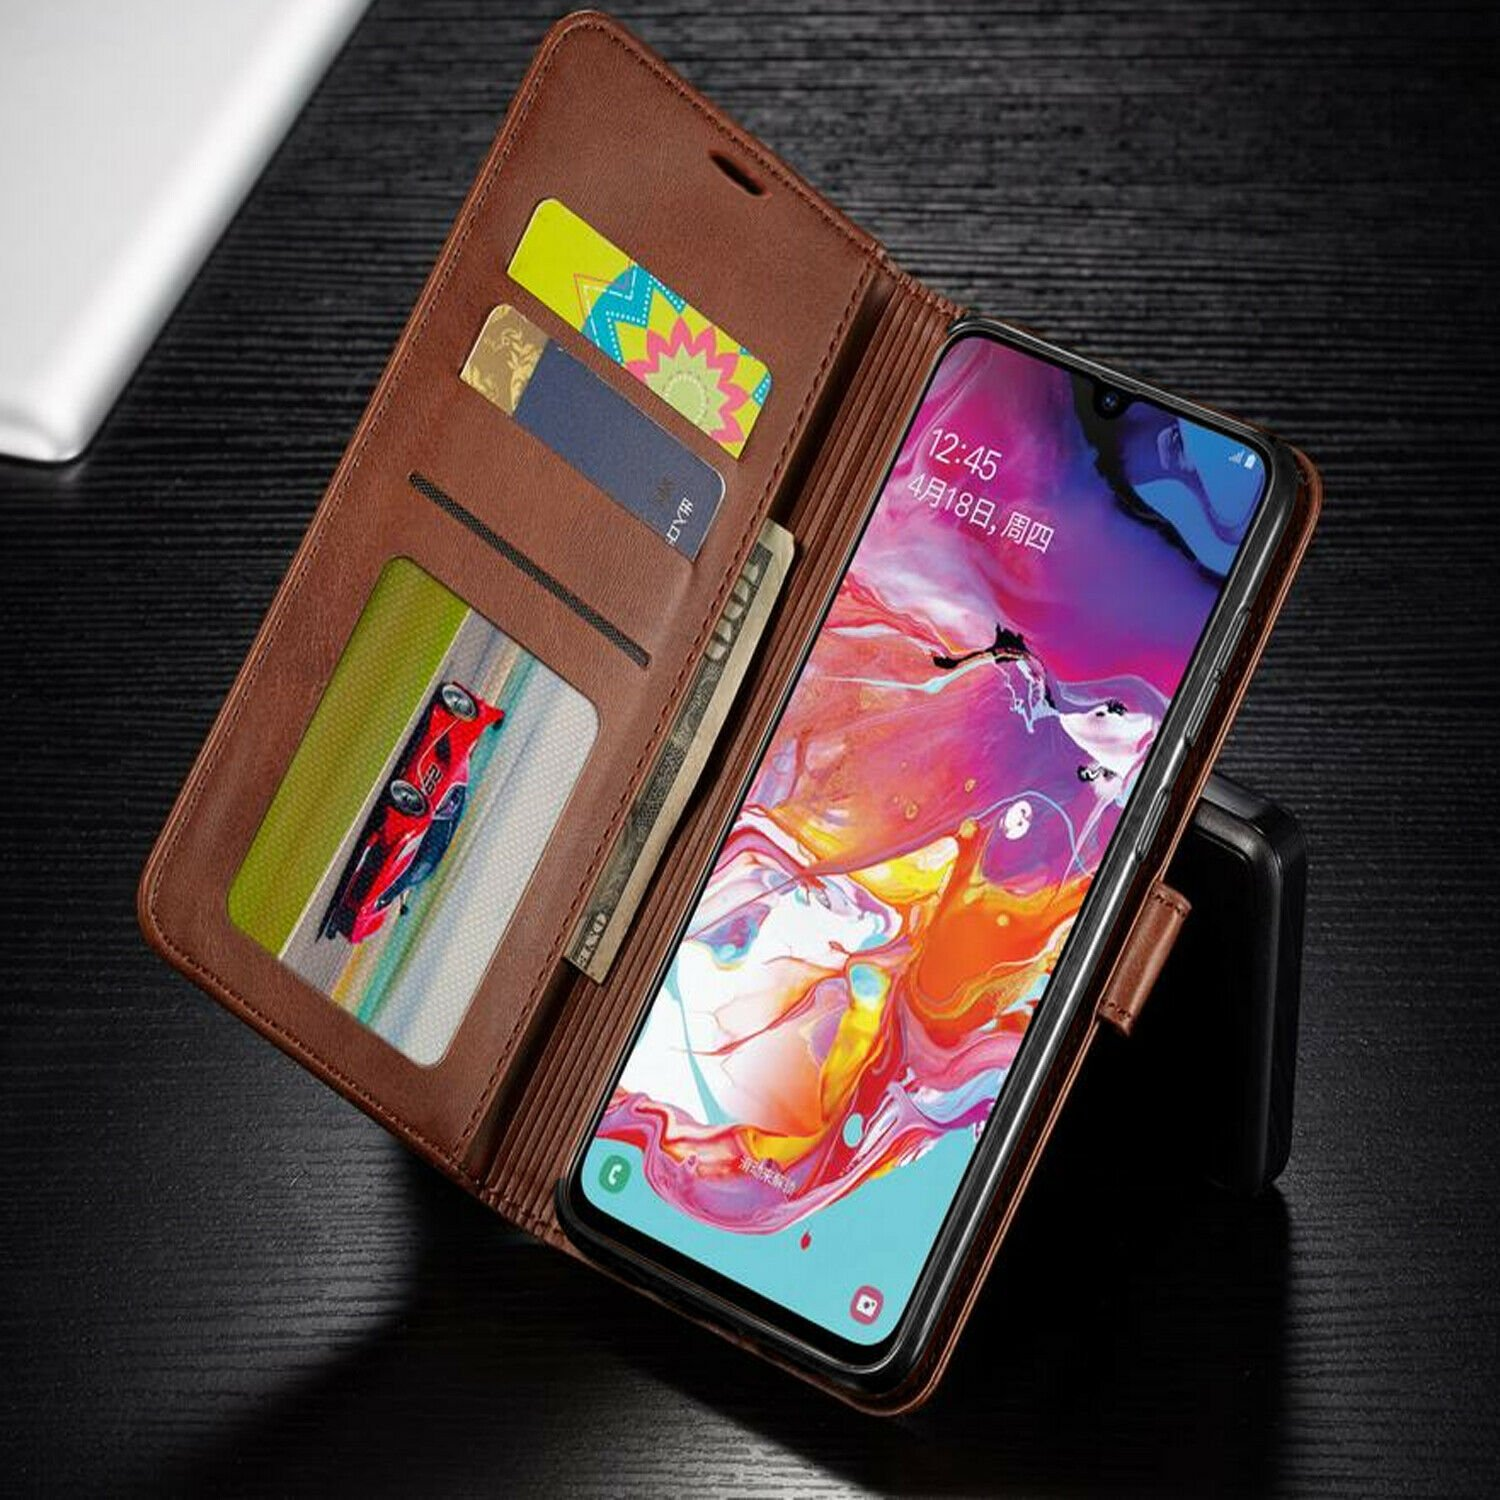 thumbnail 16 - For iPhone 7 / 8 / 7 Plus Case, Premium Wallet Cover + Tempered Glass Protector